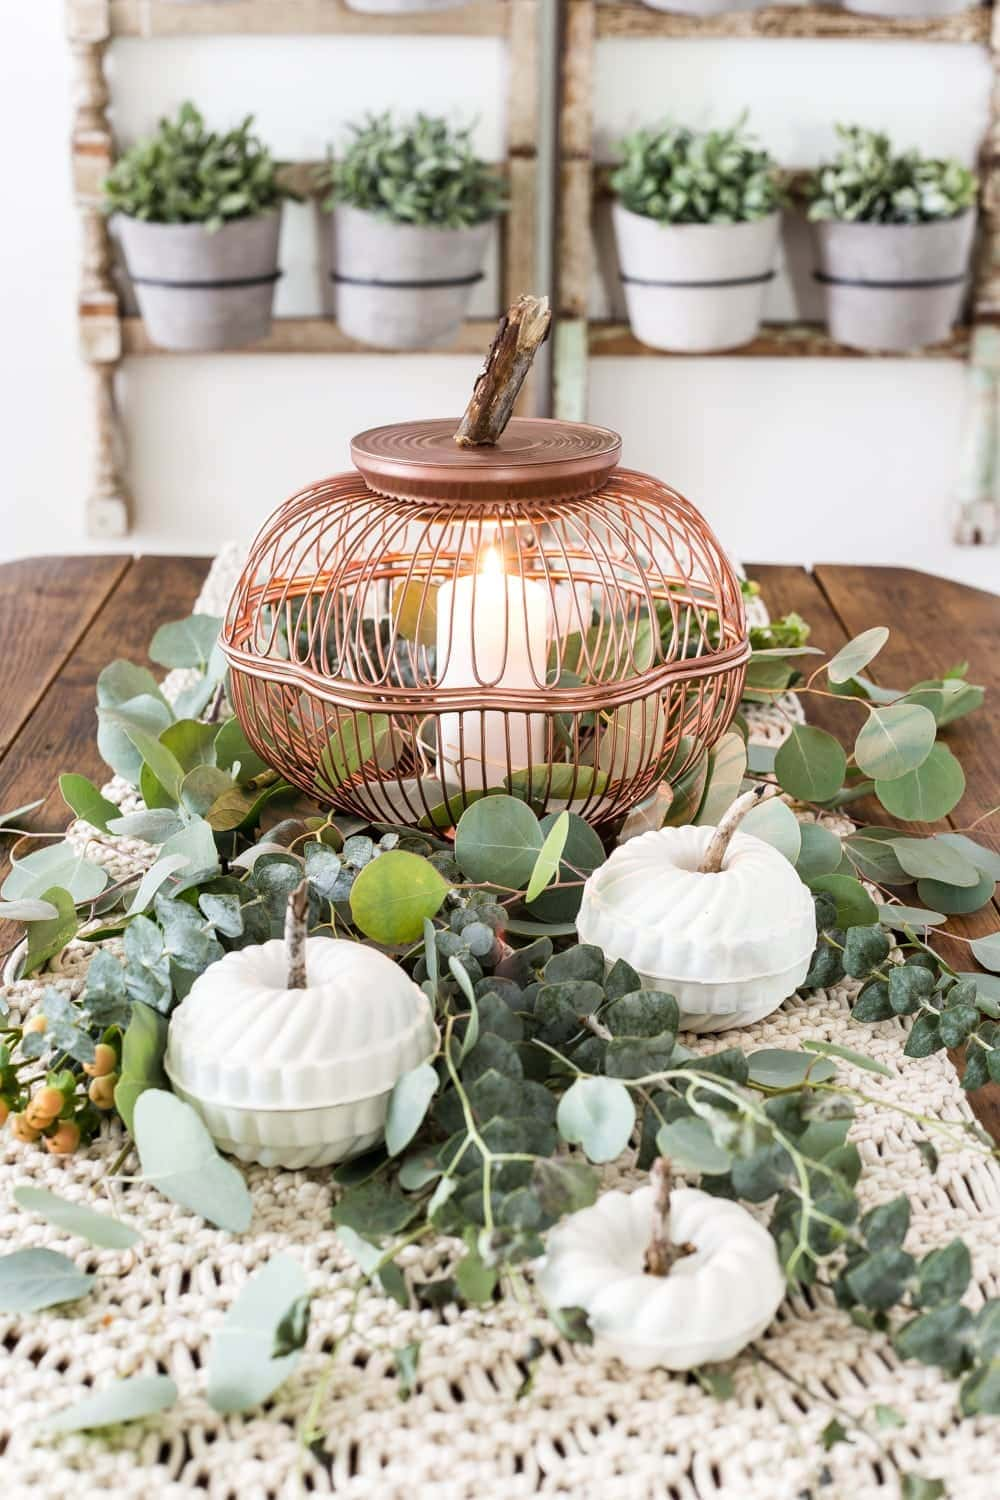 DIY pumpkins using thrifted wire bread baskets and mini bundt pan Jello molds